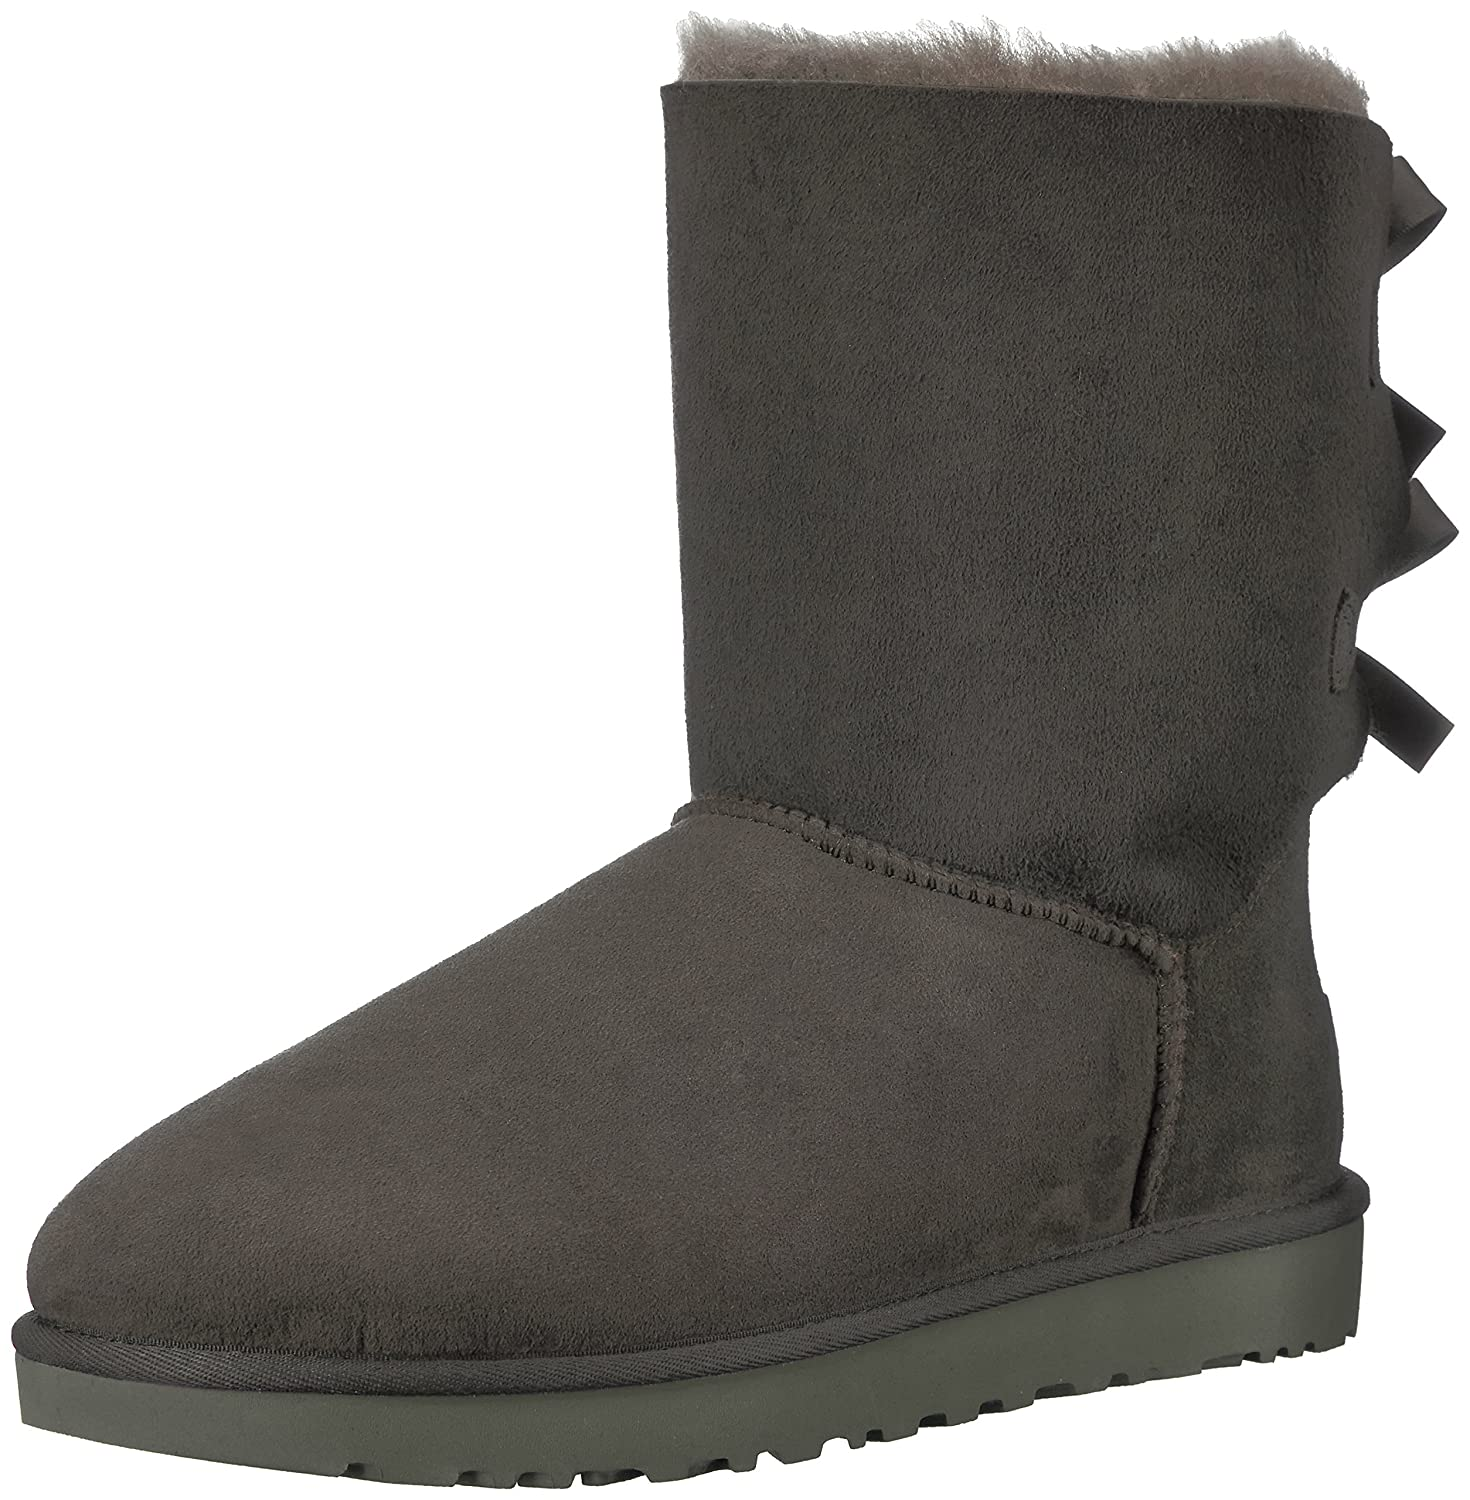 UGG Bottes Bailey Gris Bow, Bottes Doublure ChaudeFemme ChaudeFemme Gris (Grigio) 6dbdf42 - conorscully.space